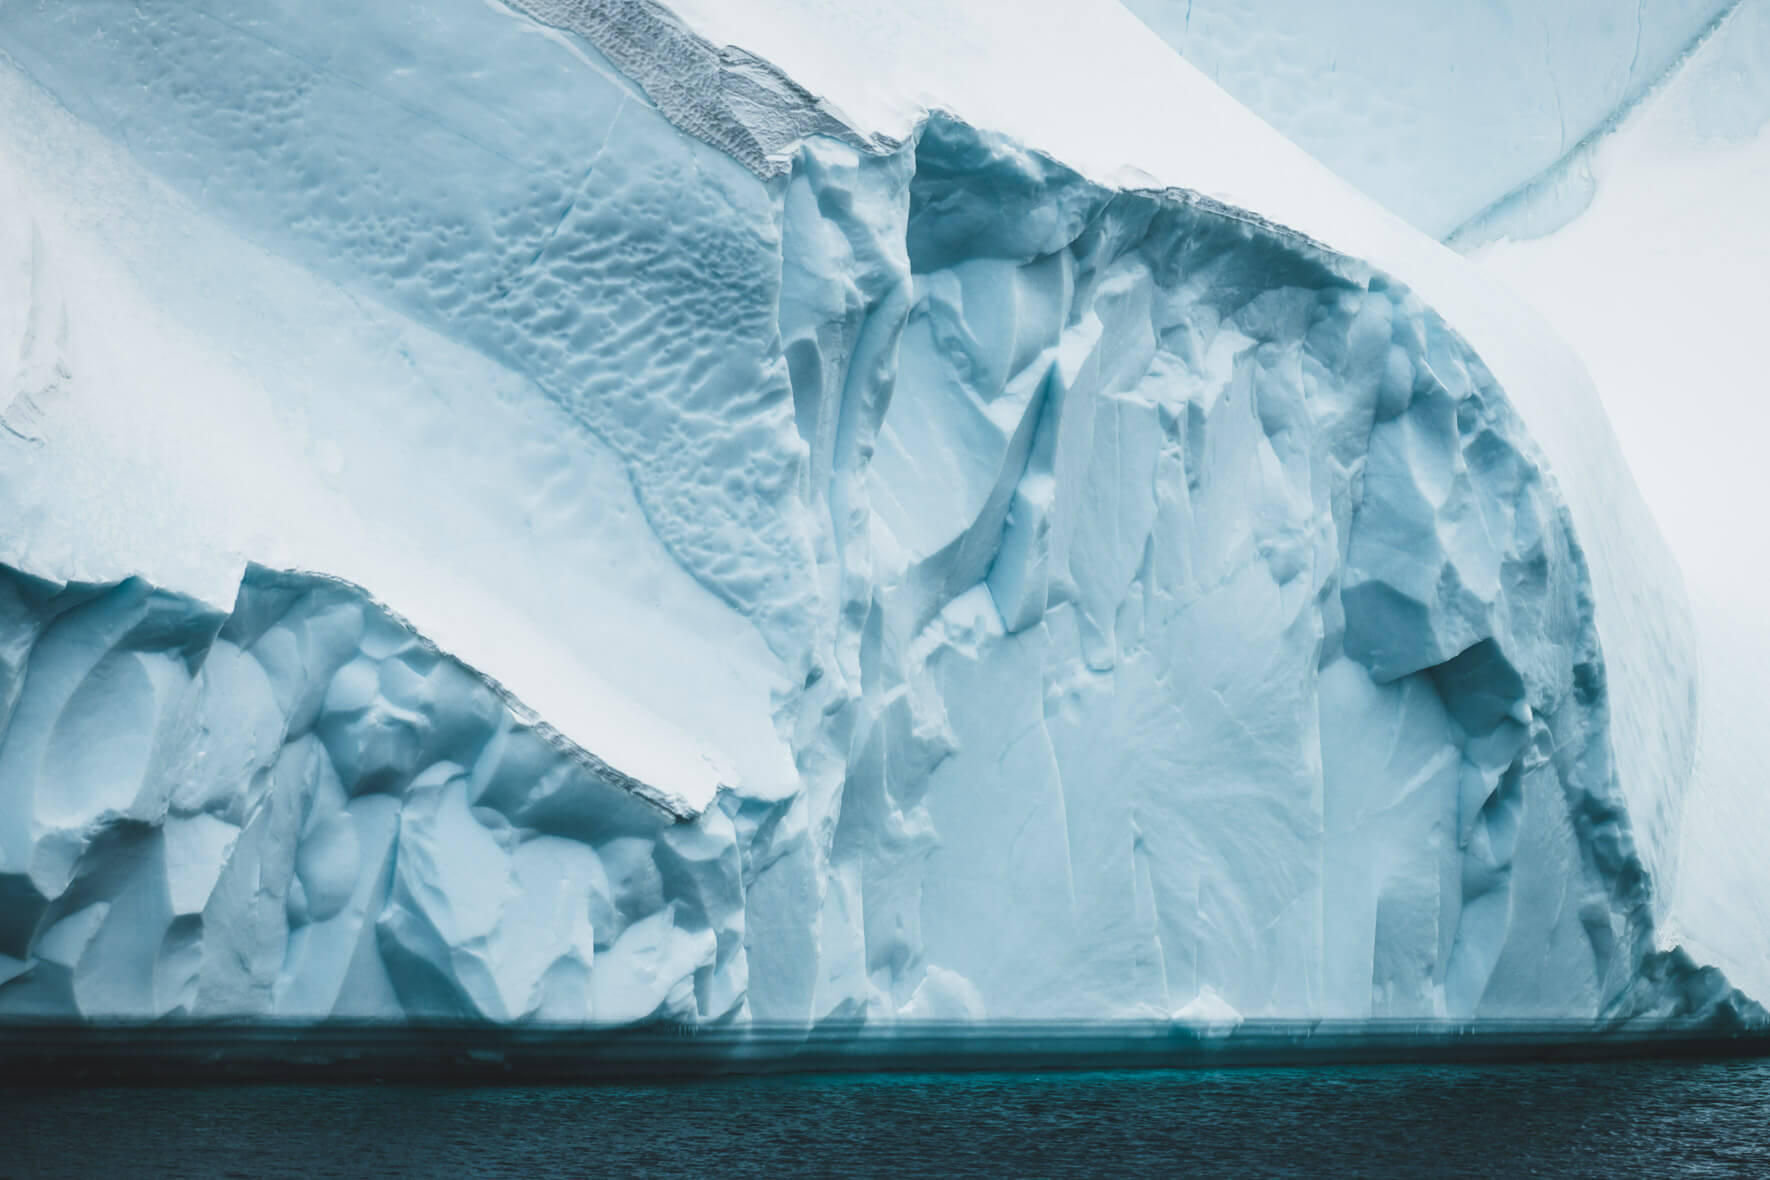 Wall of ice in the Ilulissat Icefjord on the west coast of Greenland